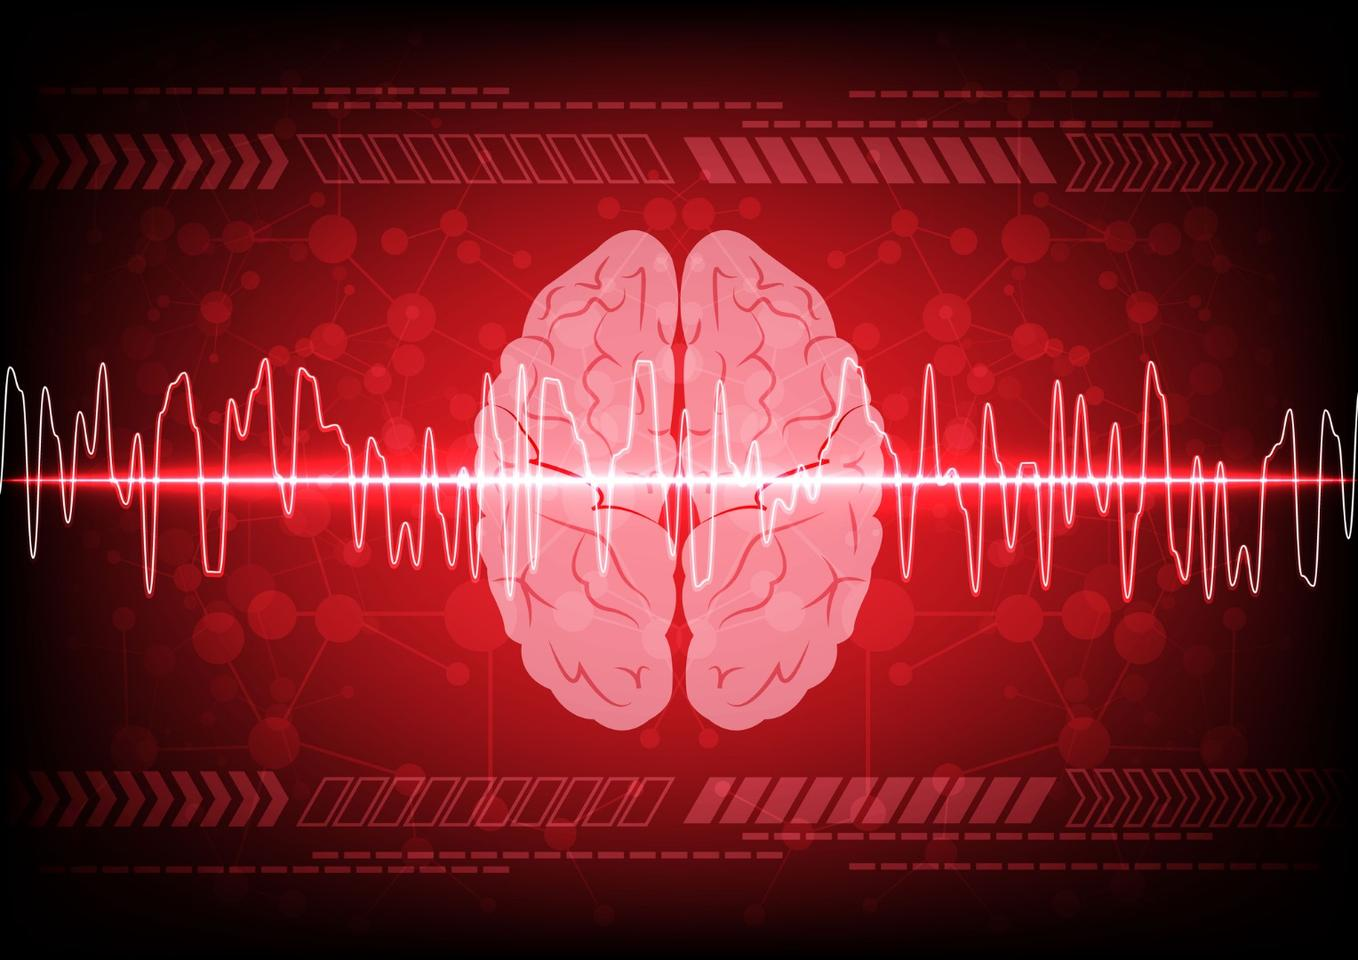 Researchers have developed an algorithm that can translate neural signals from the auditory parts of the brain into synthesized speech